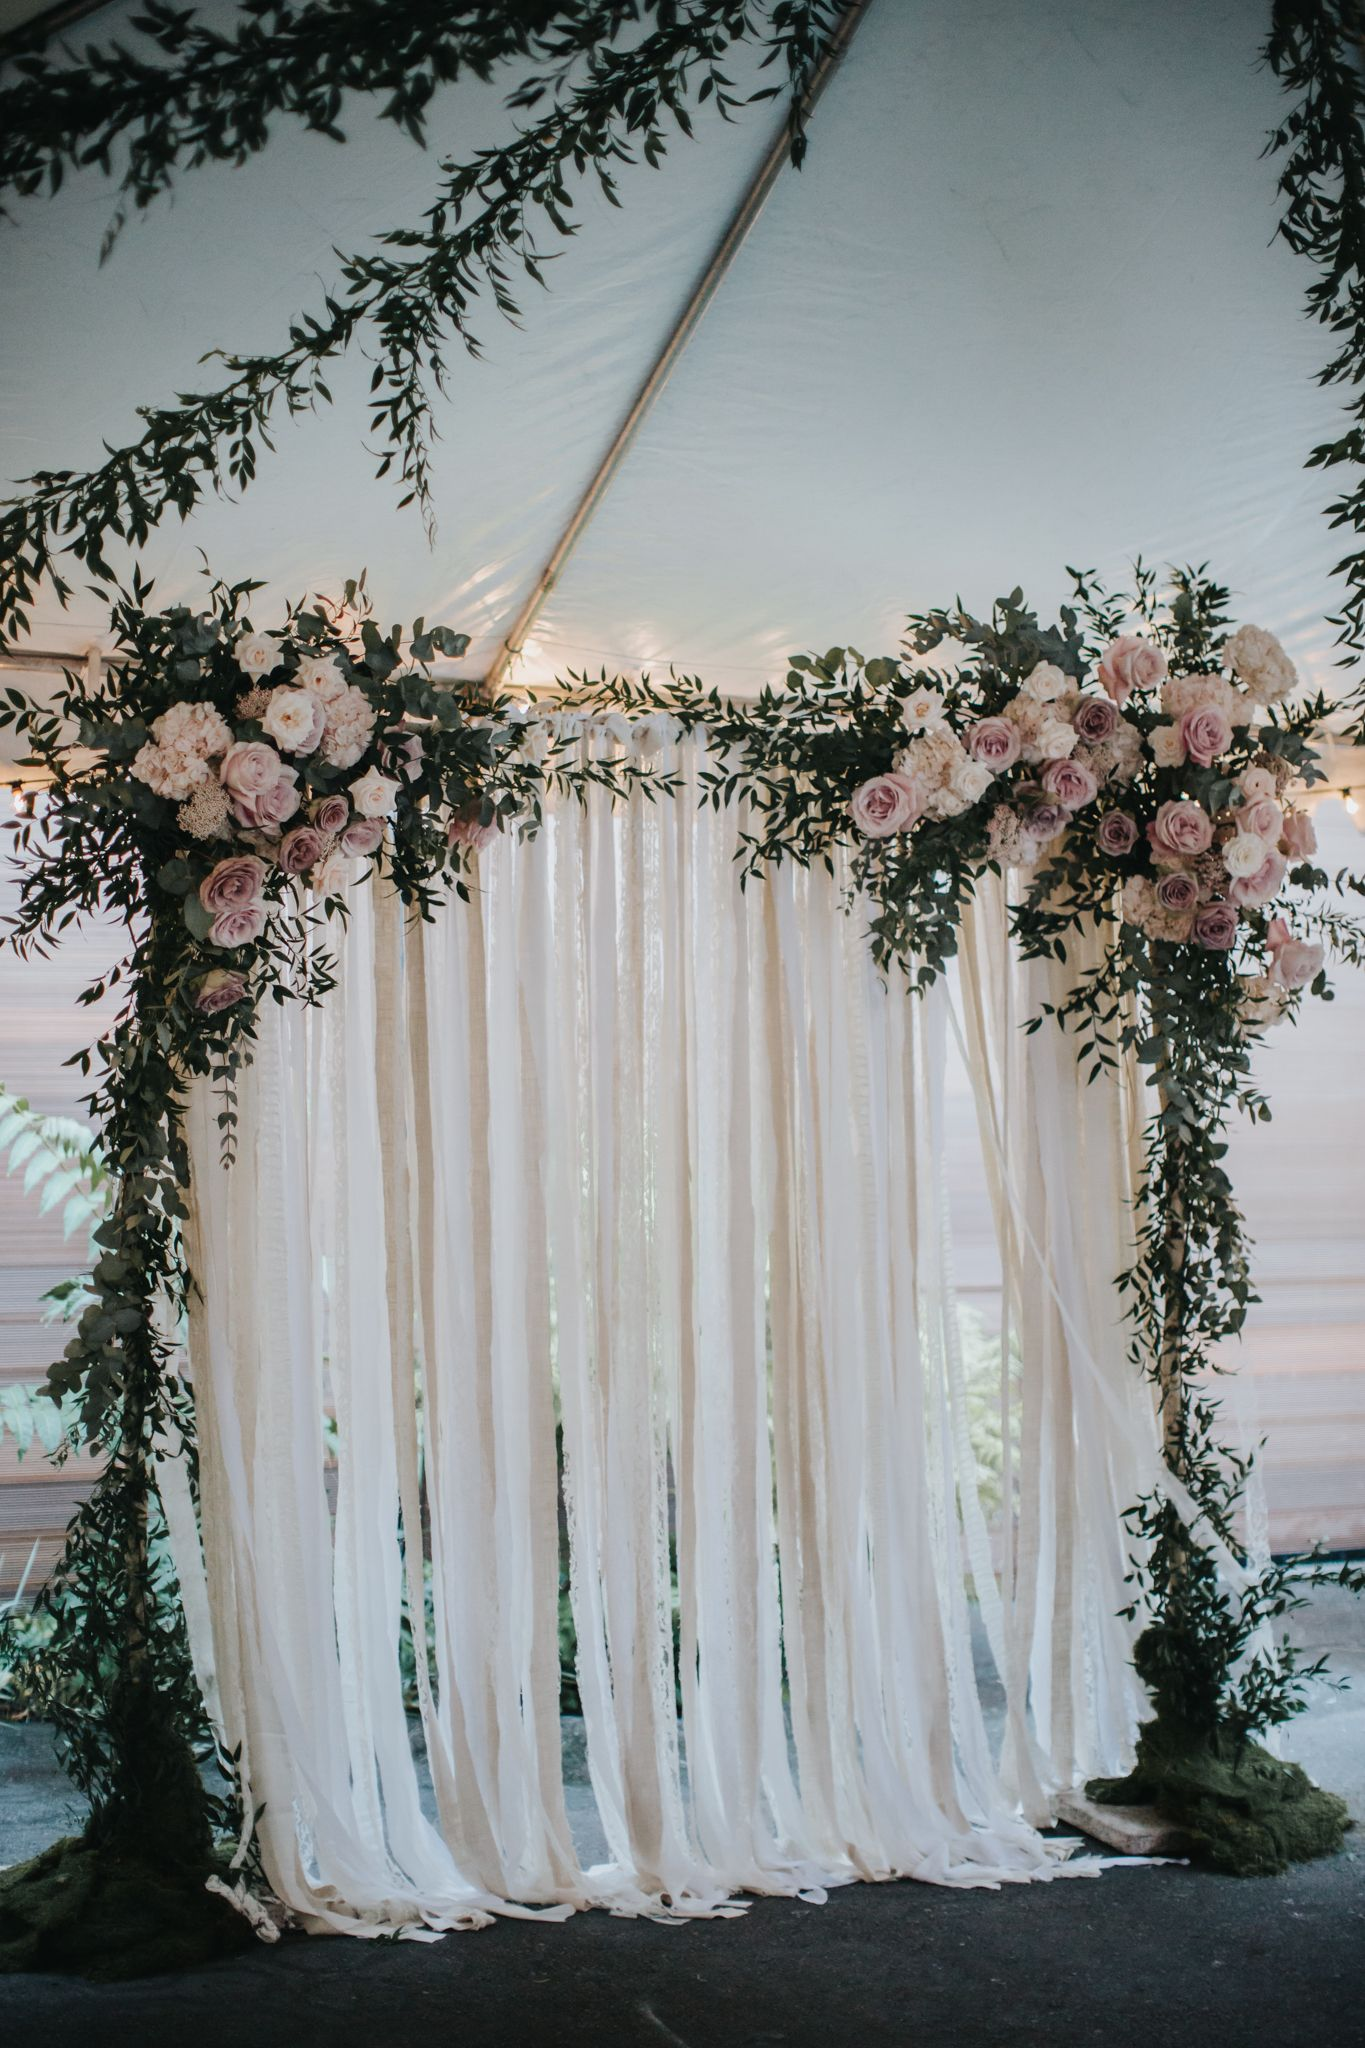 ethereal wedding ceremony arch idea greenery arch with blush flowers and ribbon backdrop